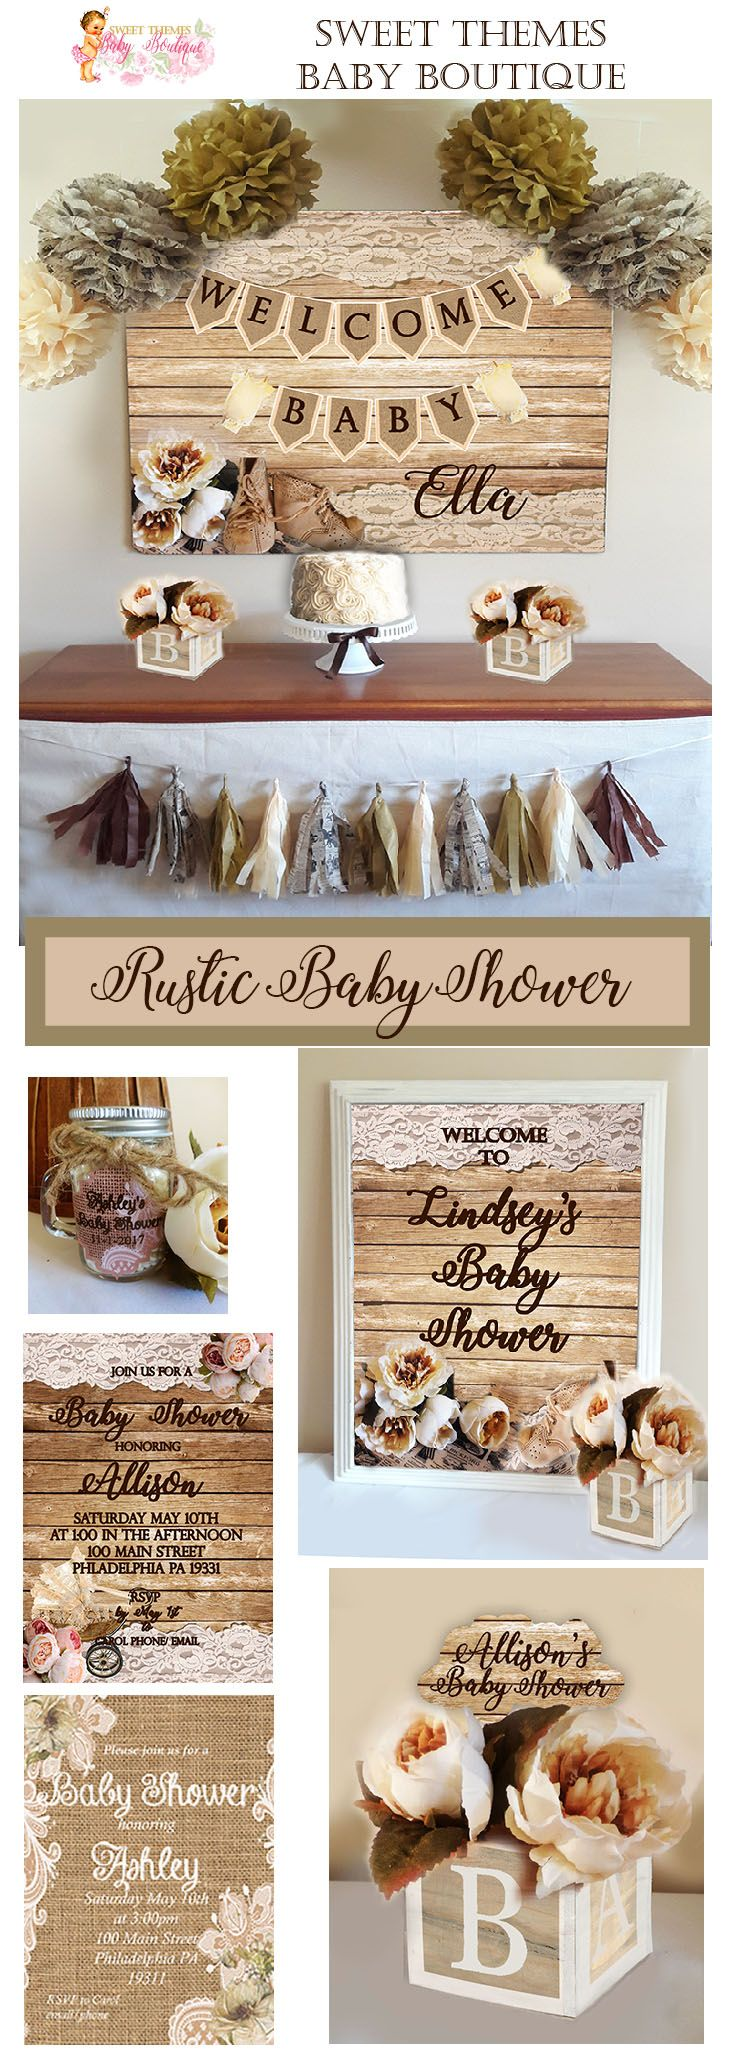 Rustic Baby Shower, Rustic Baby Shower Collections, Baby Shower, Baby Shower Decorations, Baby Shower Invitations